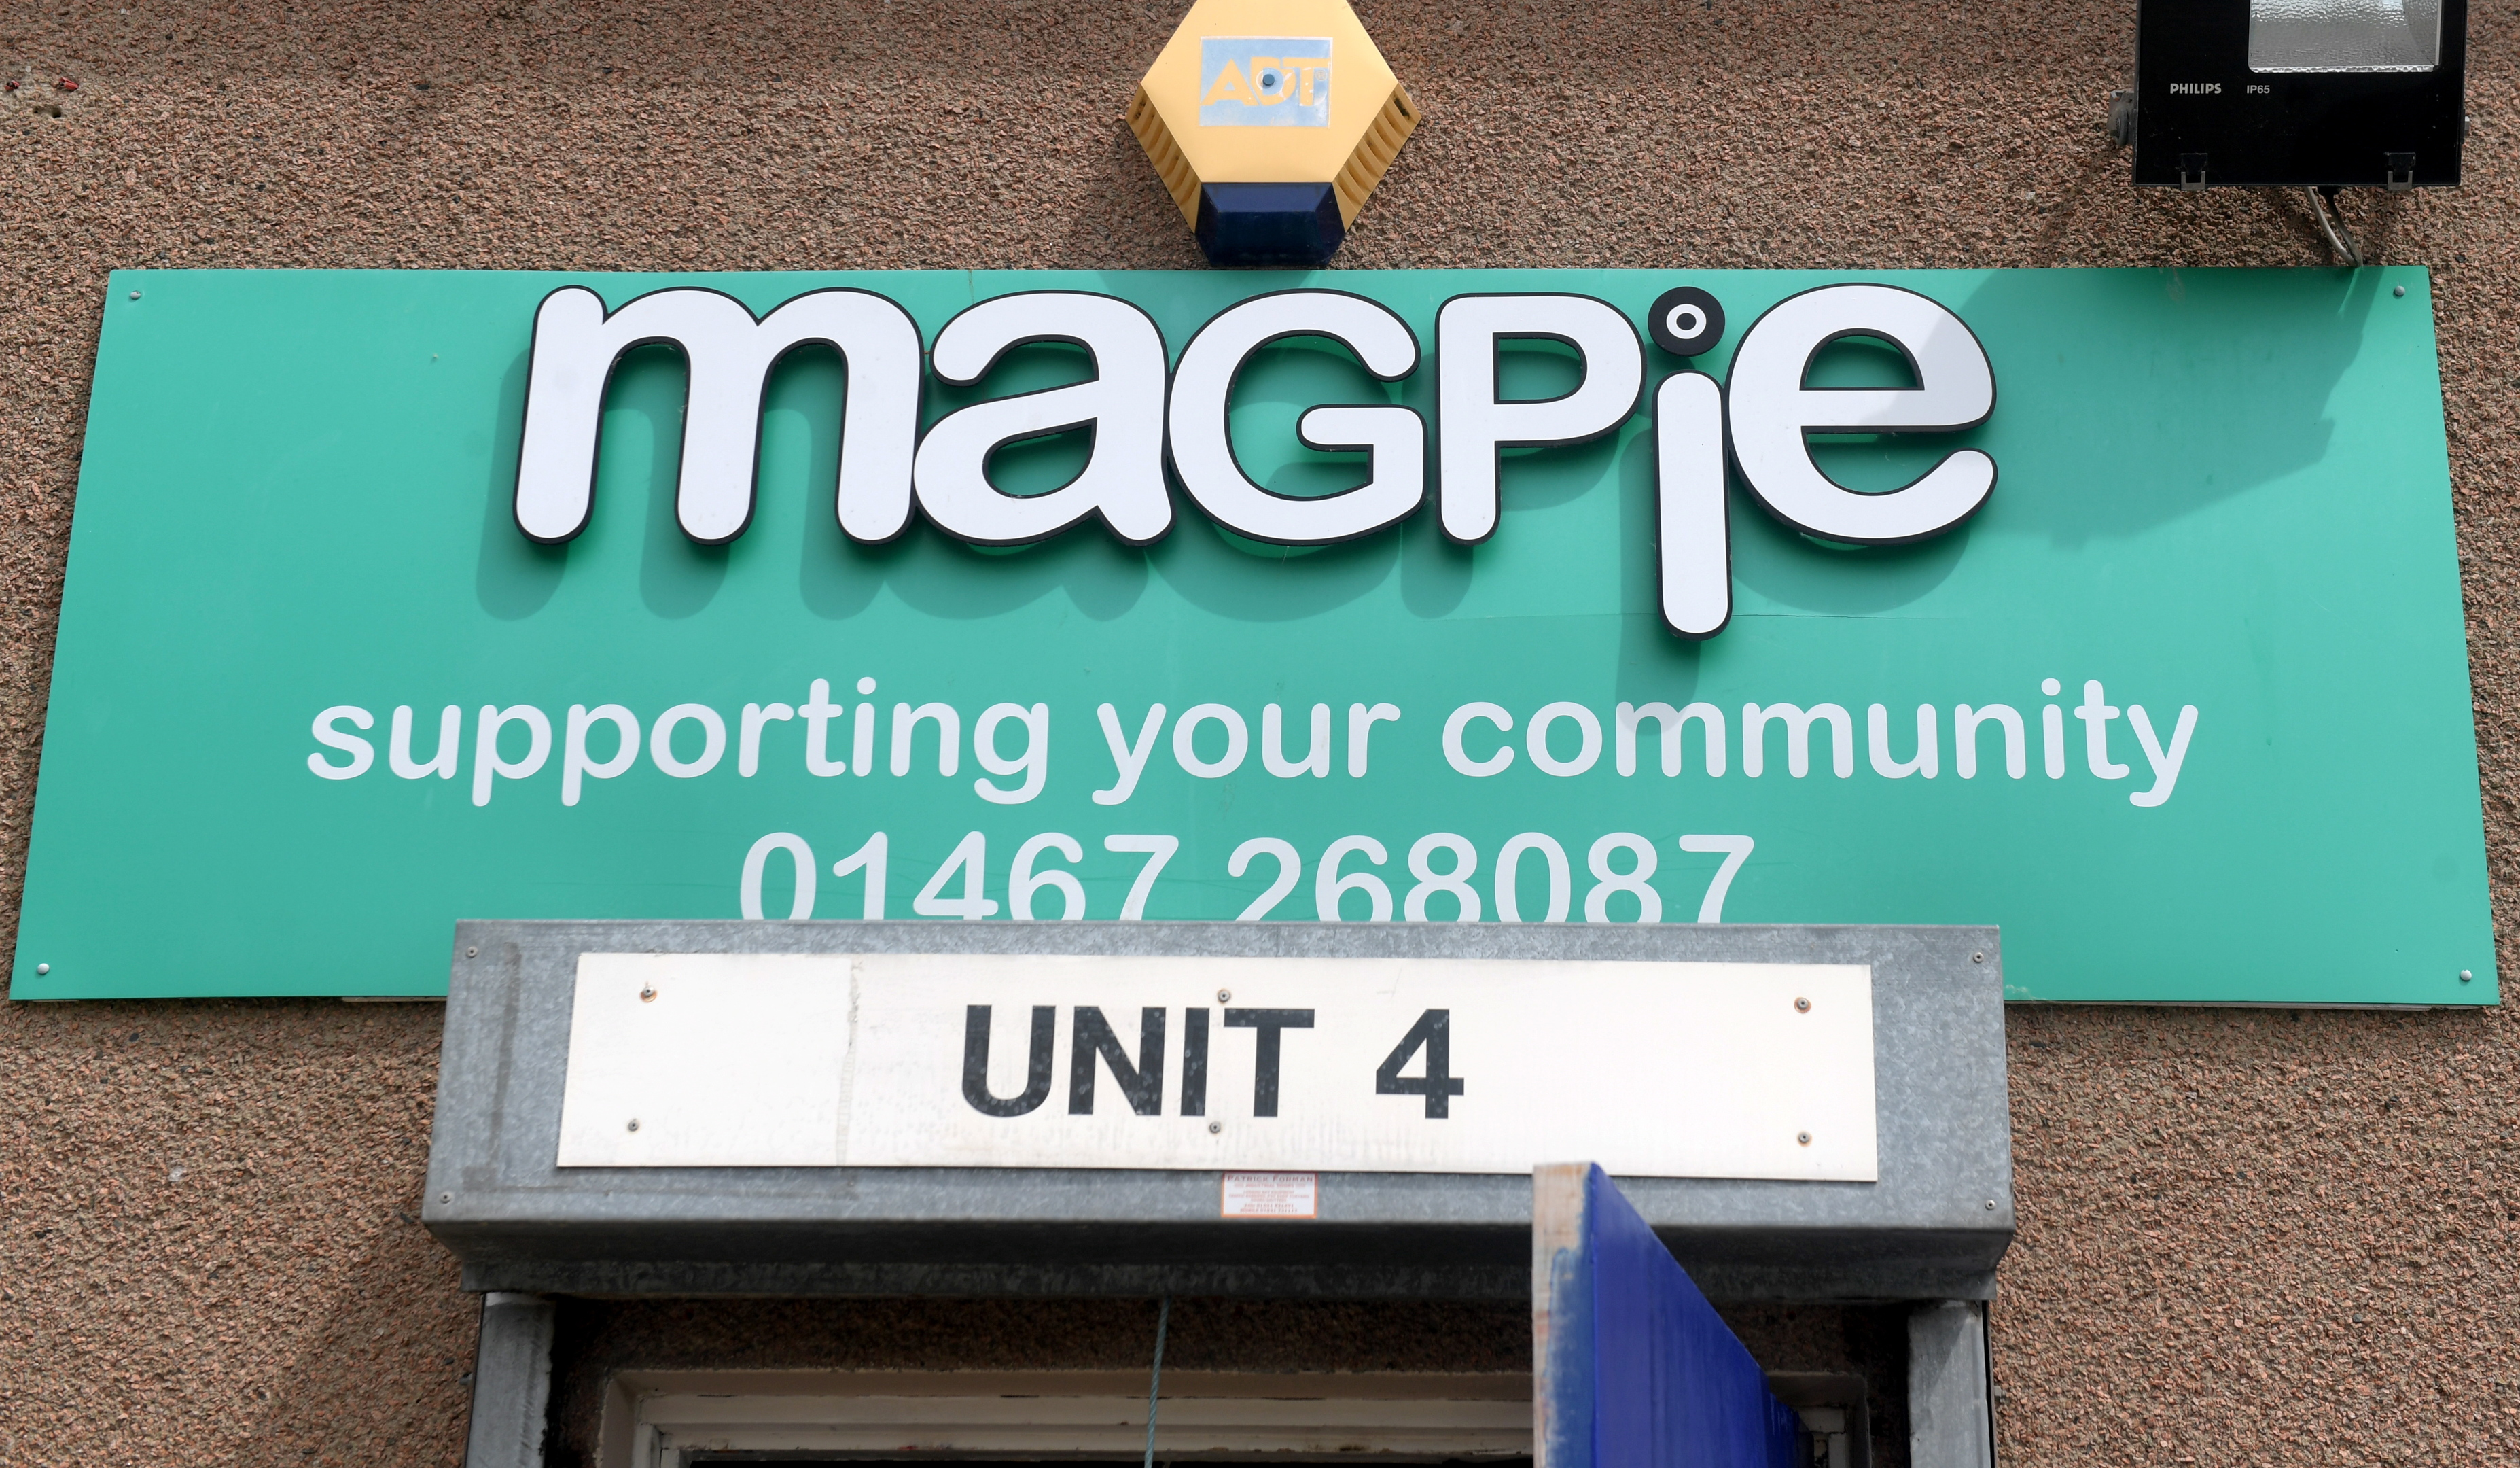 Magpie in Inverurie is closing down